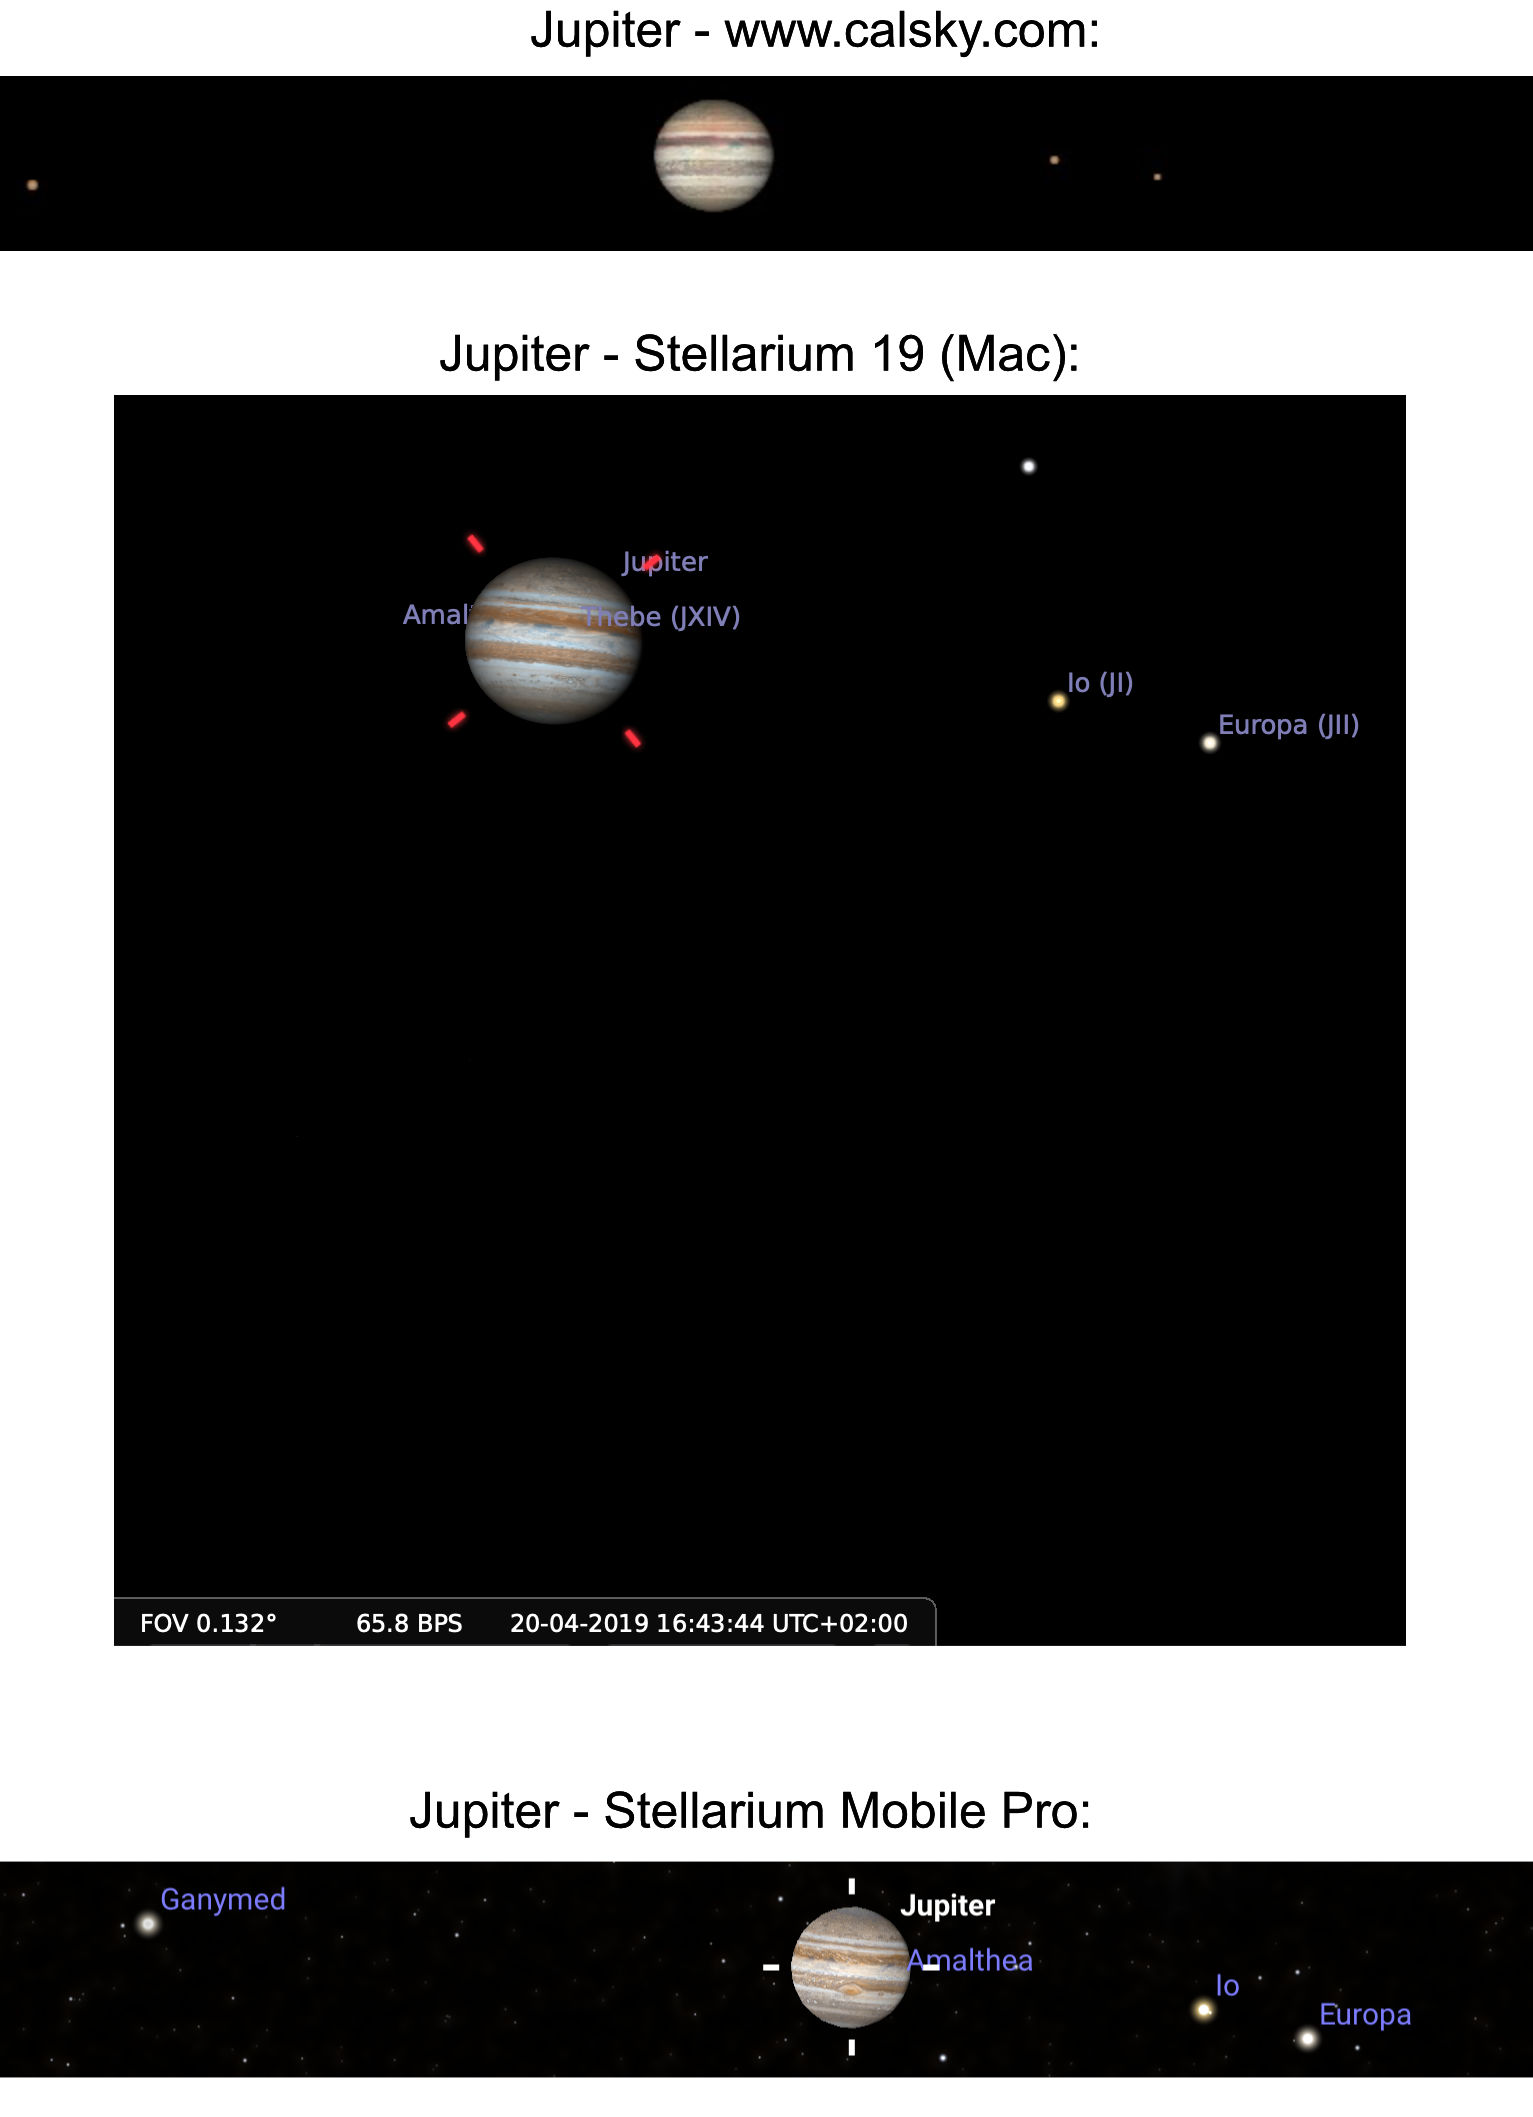 Jupiter differences